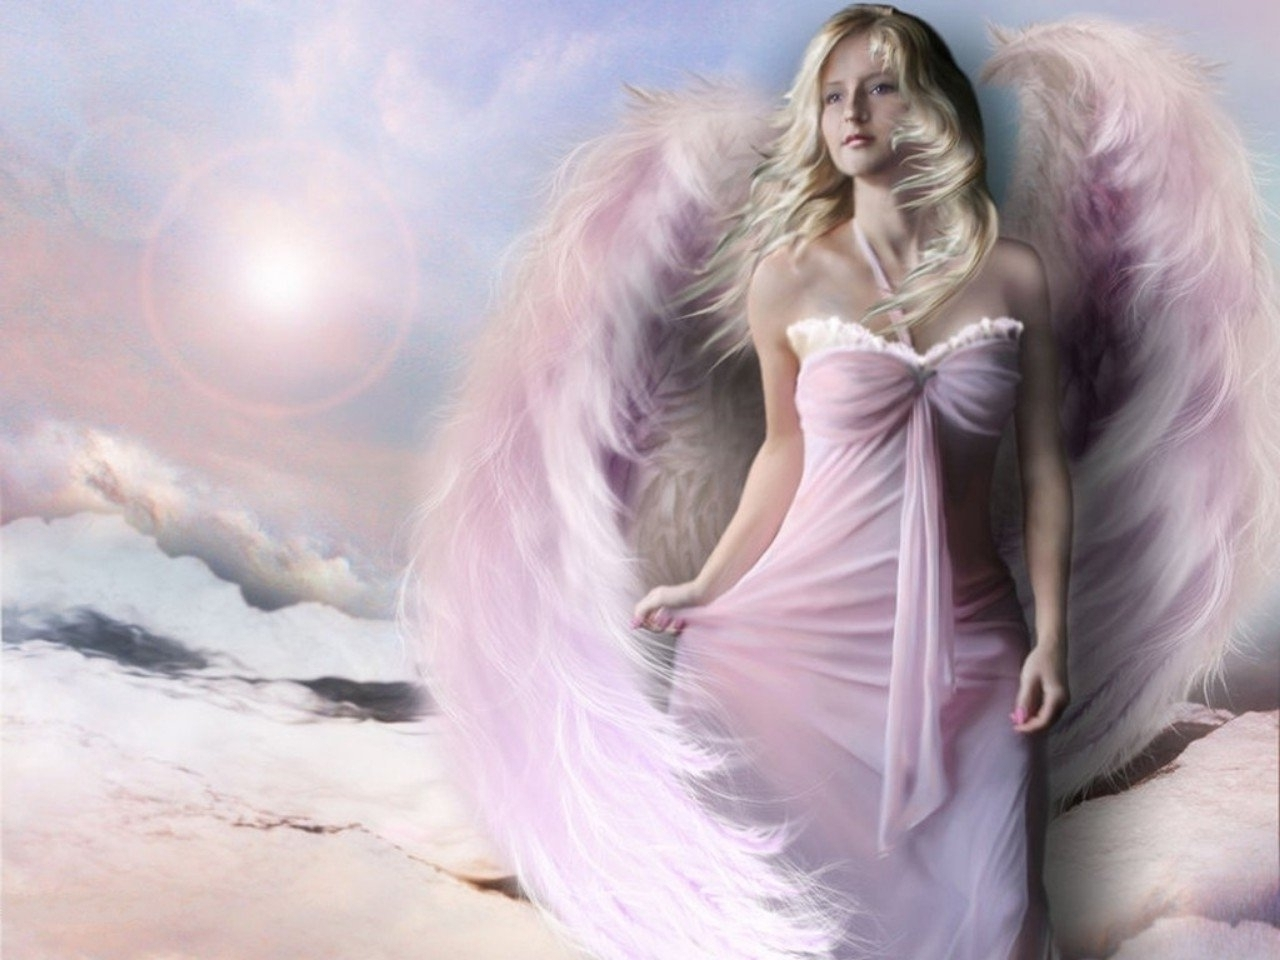 hd wallpapers: angel wallpaper free download